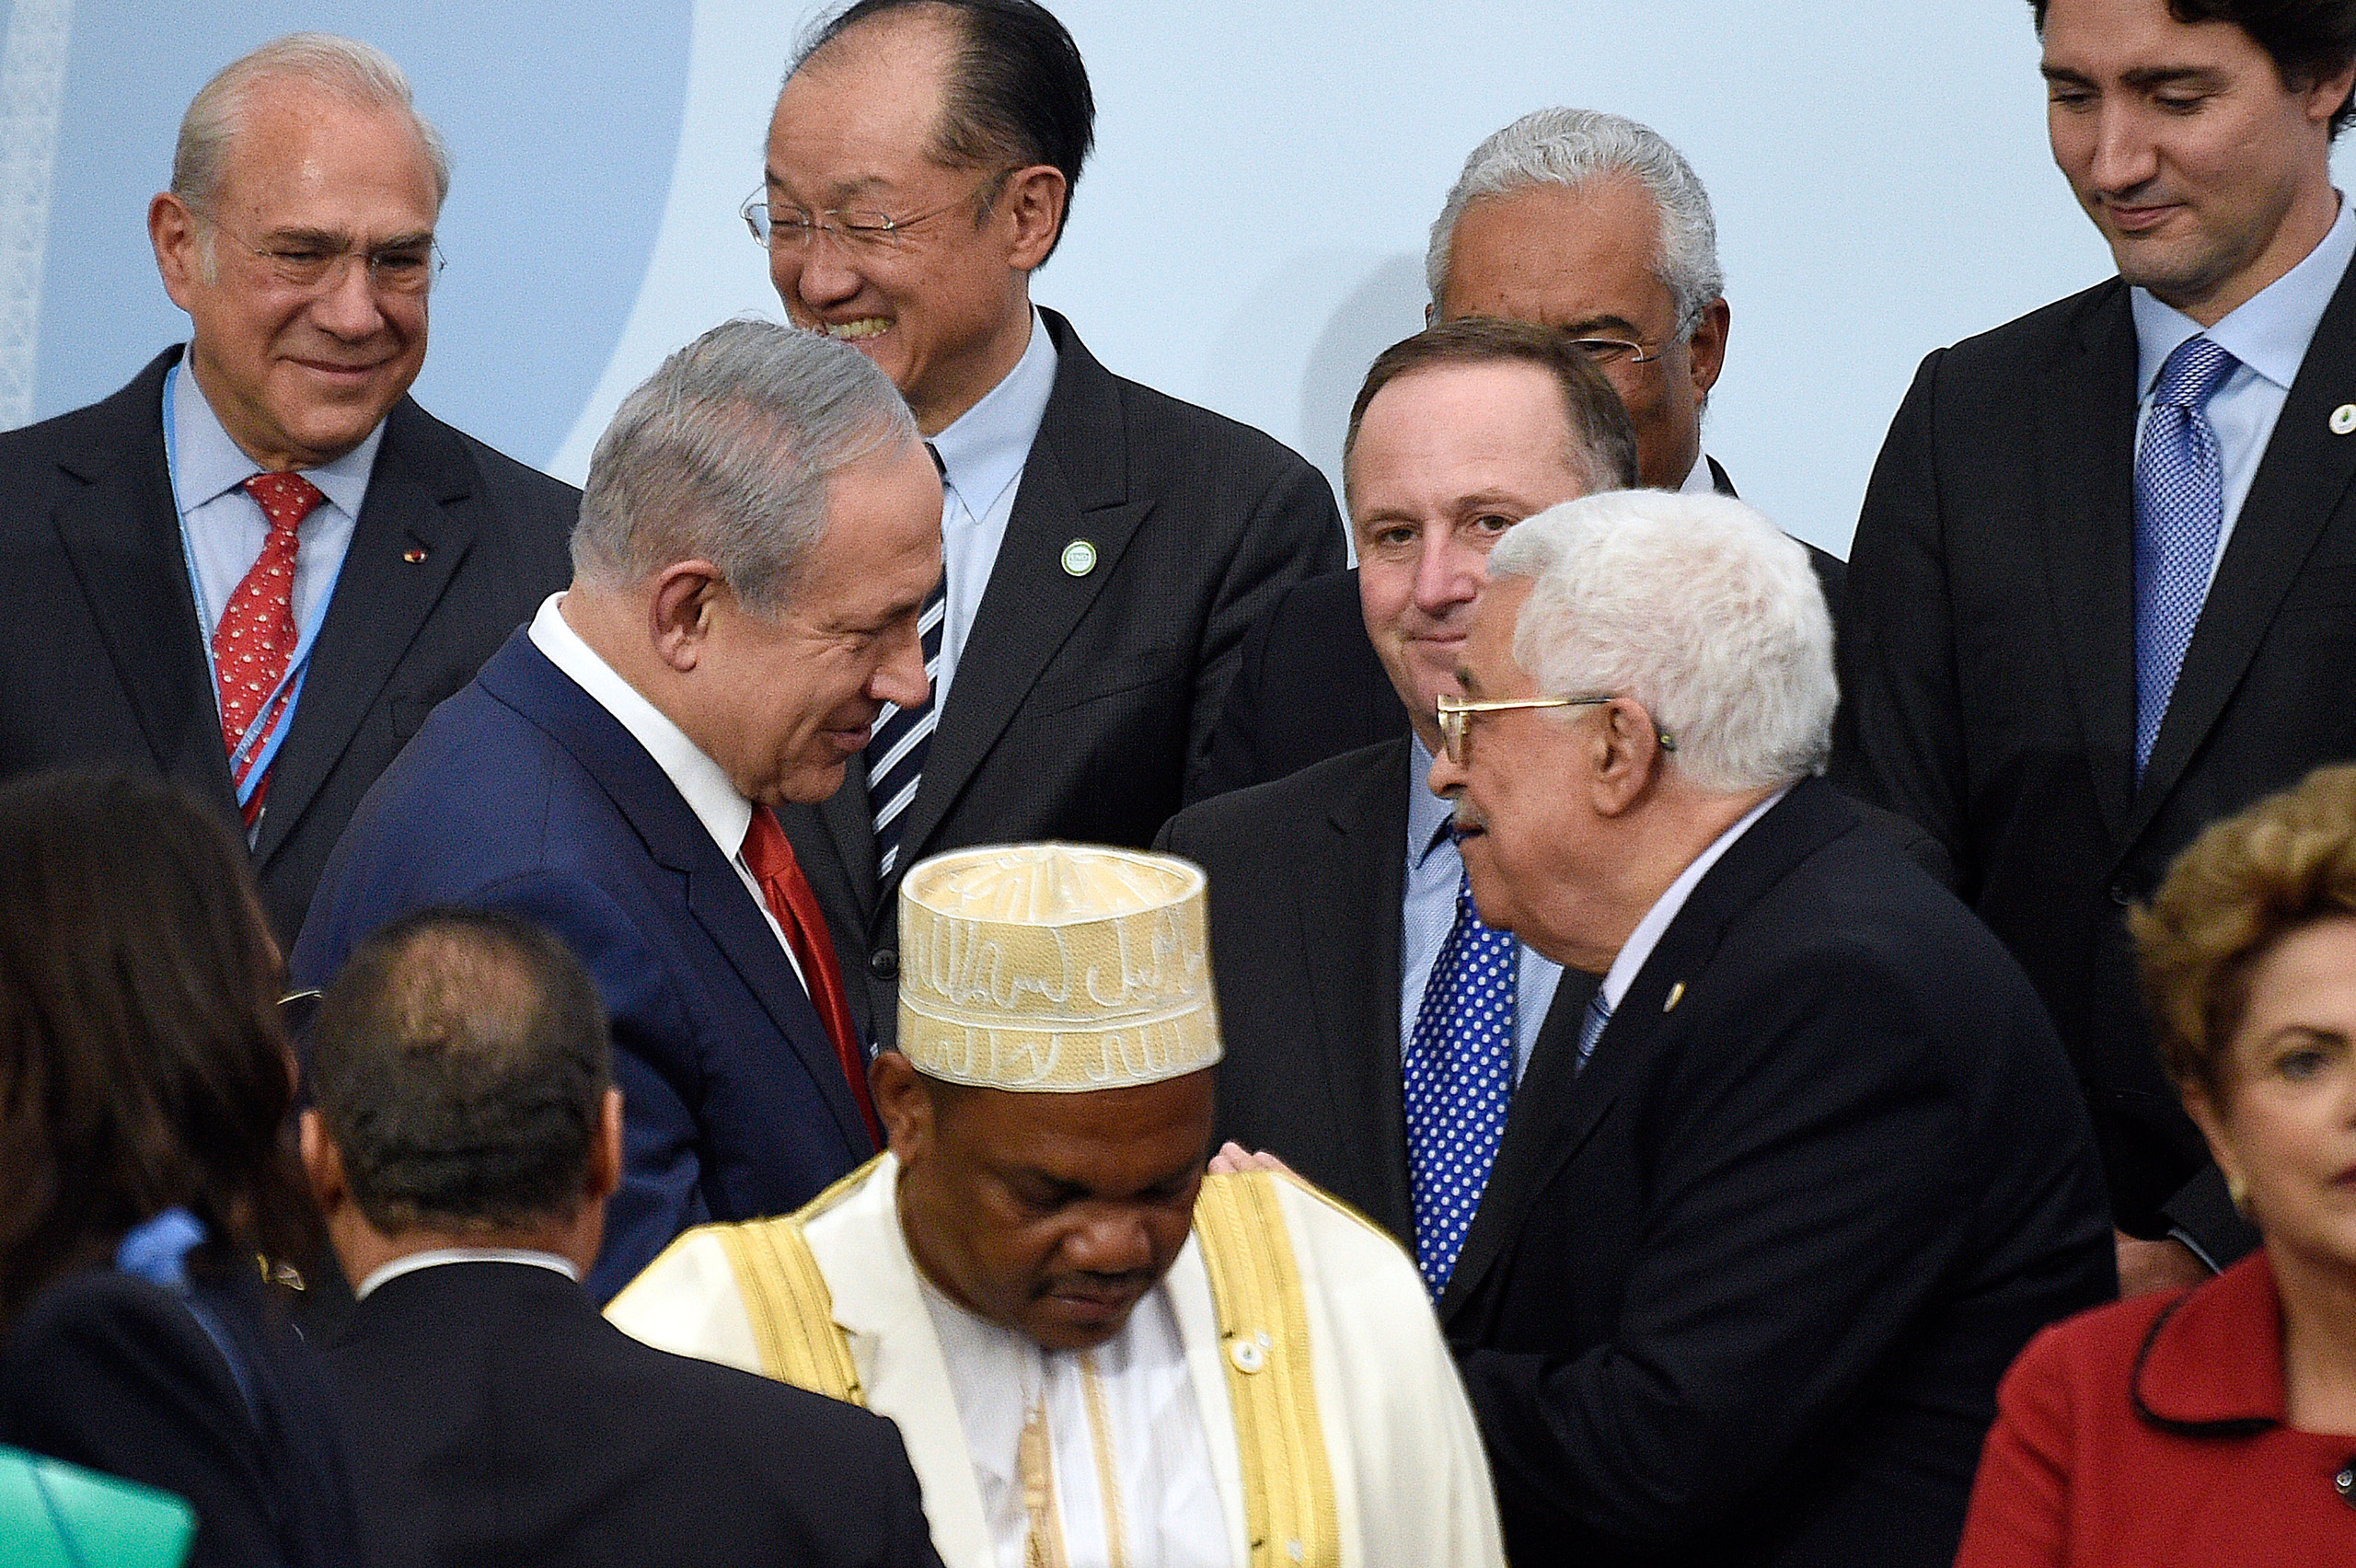 Israeli Prime Minister Benjamin Netanyahu, center left, talks with Palestinian President Mahmoud Abbas, center right, at the COP21 United Nations Climate Change Conference in Le Bourget, France, on Nov. 30, 2015.